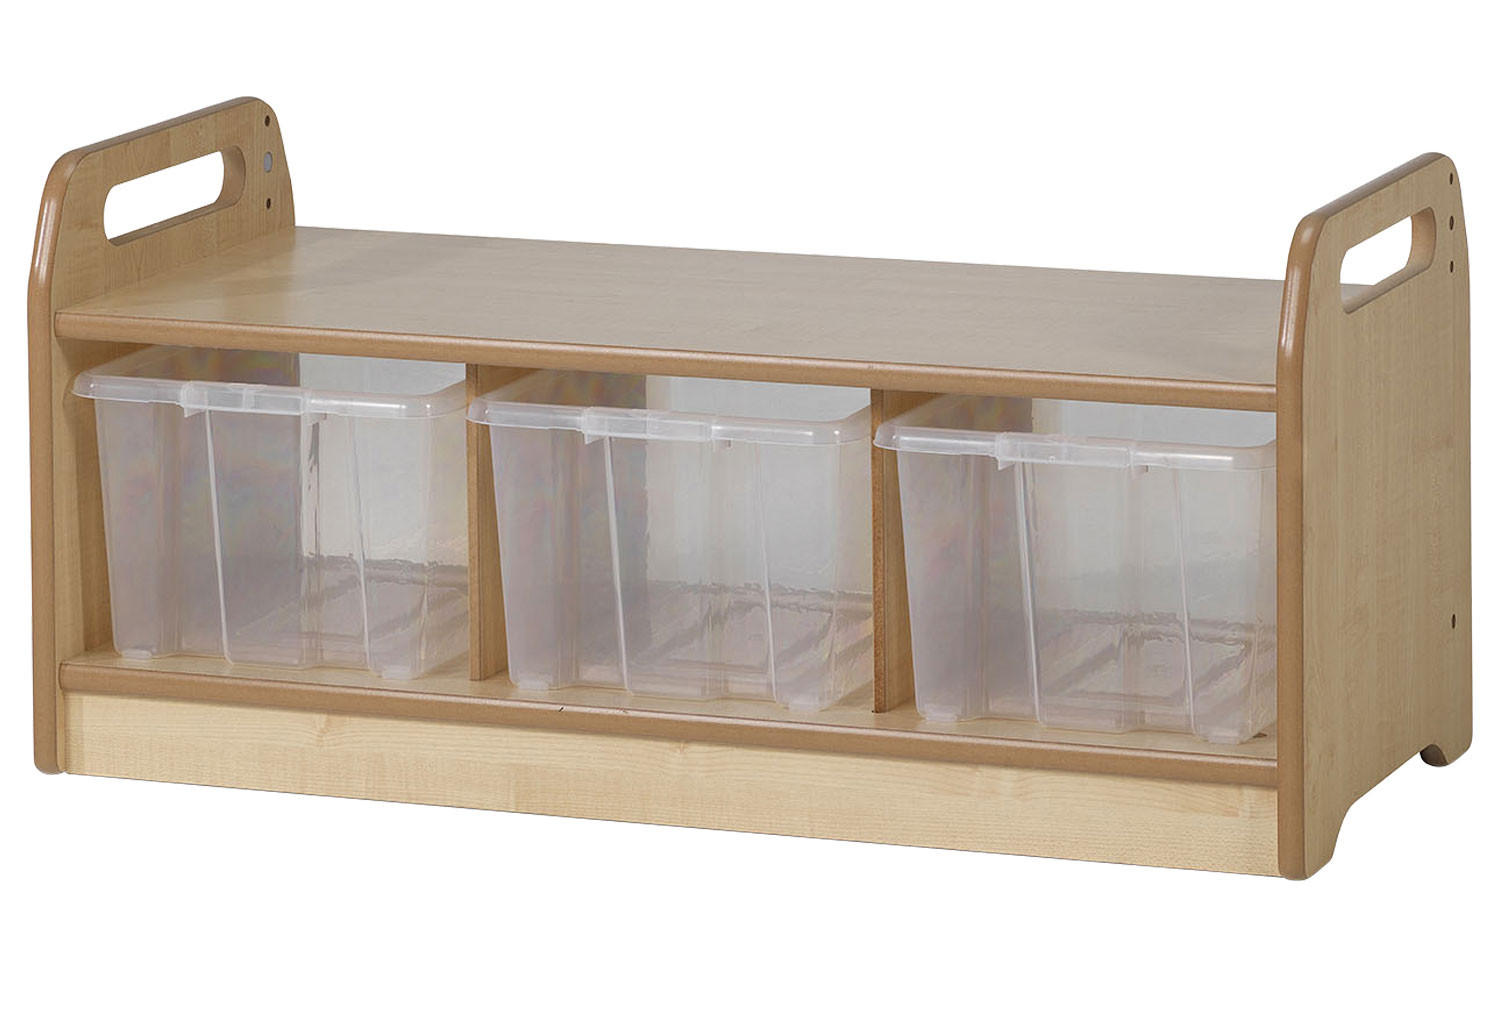 Playscapes Low Level Storage Bench With 3 Clear Tubs